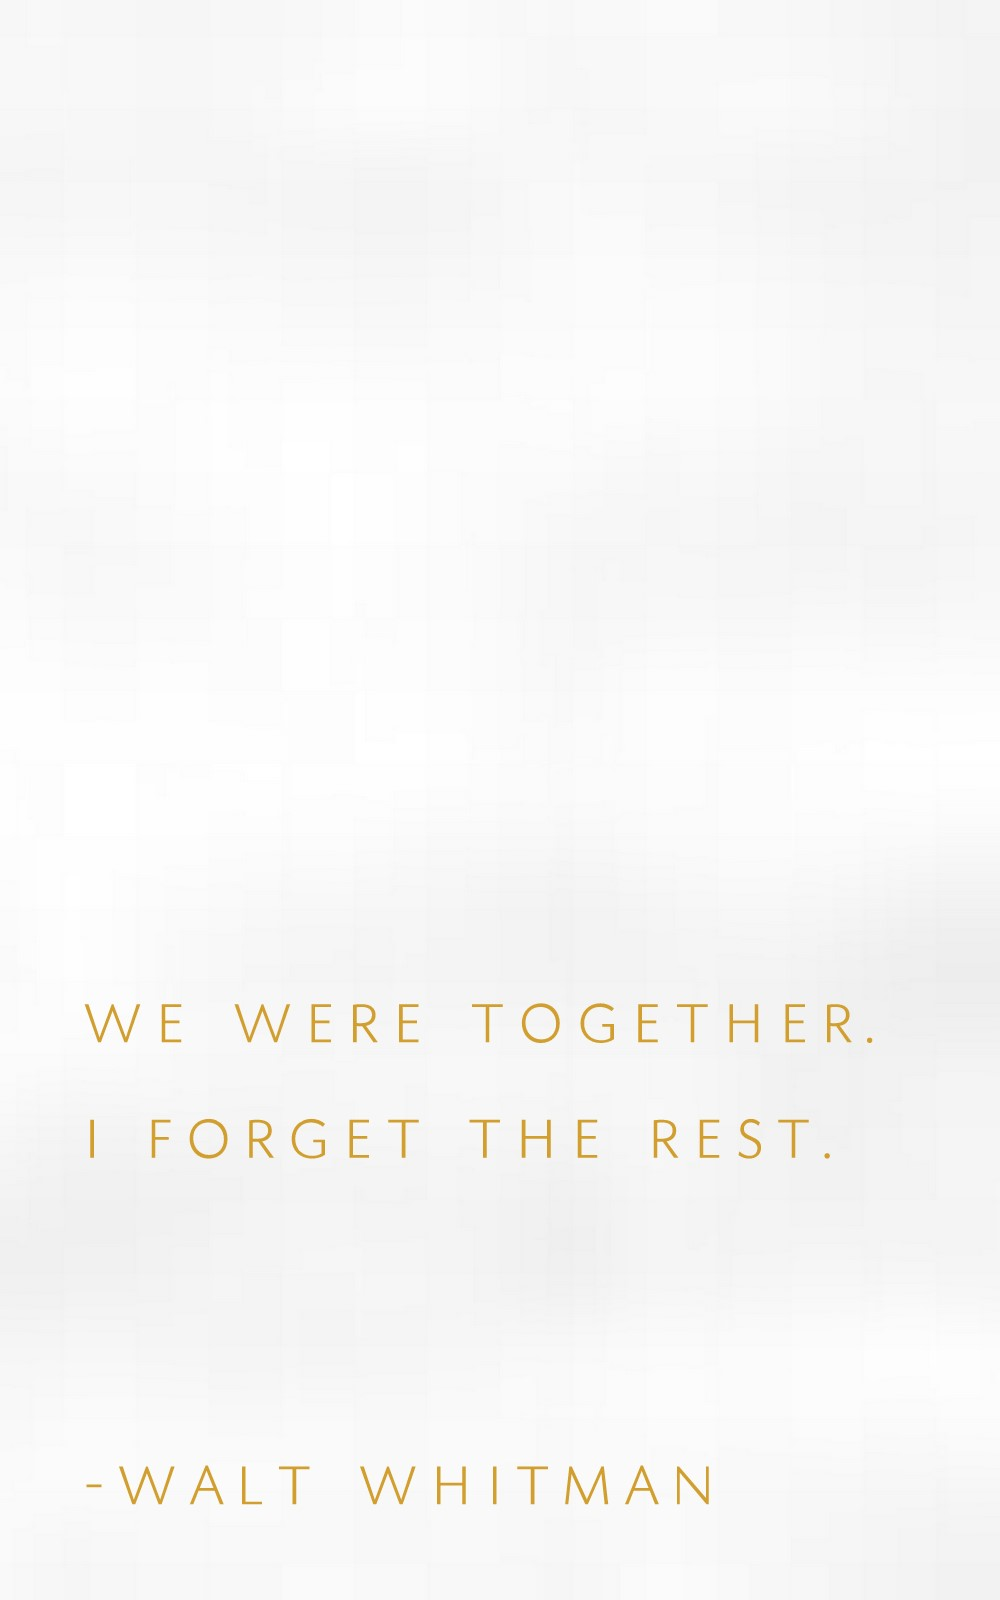 we-were-together-walt-whitman.jpg